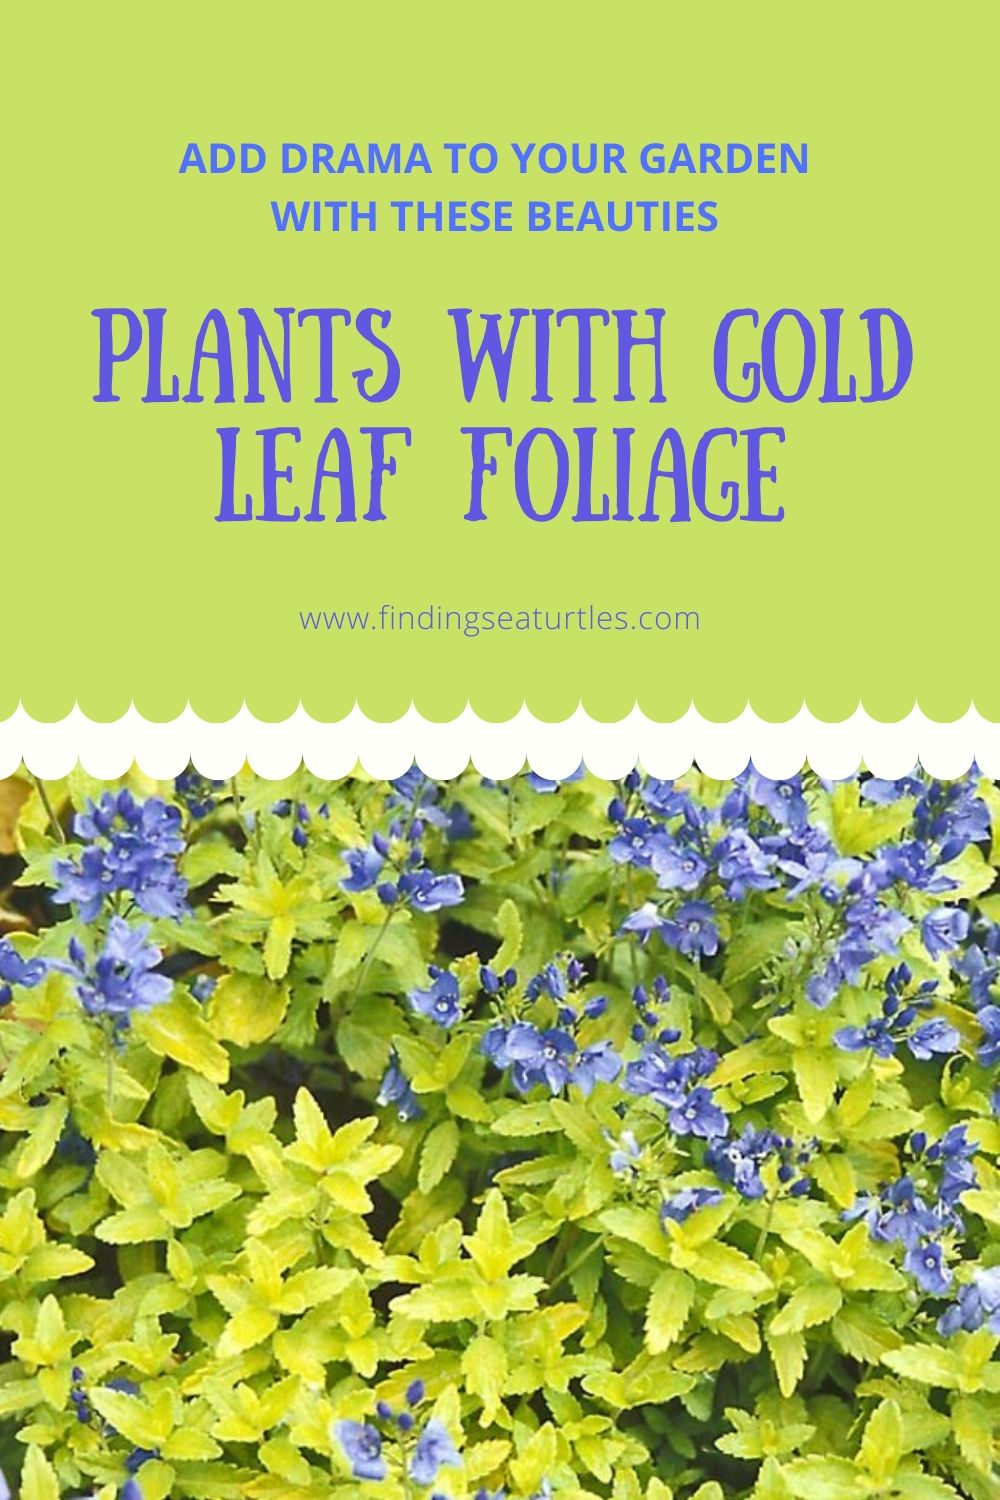 Add Drama to your Garden with These Beauties Plants with Gold Leaf Foliage #GoldFoliage #PlantswithGoldLeaves #DramaticFoliagePlants #Gardening #Landscapes #GoldLeafPlants